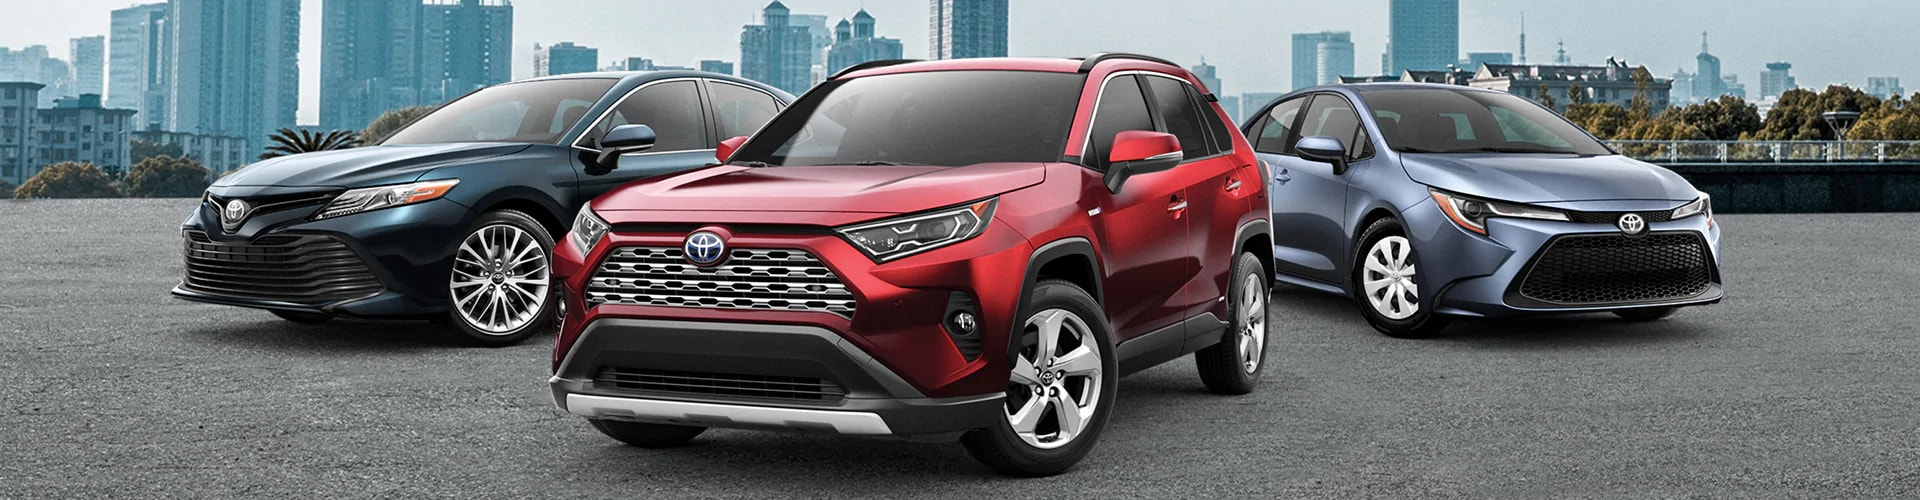 Heritage Toyota Owings Mills >> About Heritage Toyota Owings Mills   Toyota Dealer Near Me